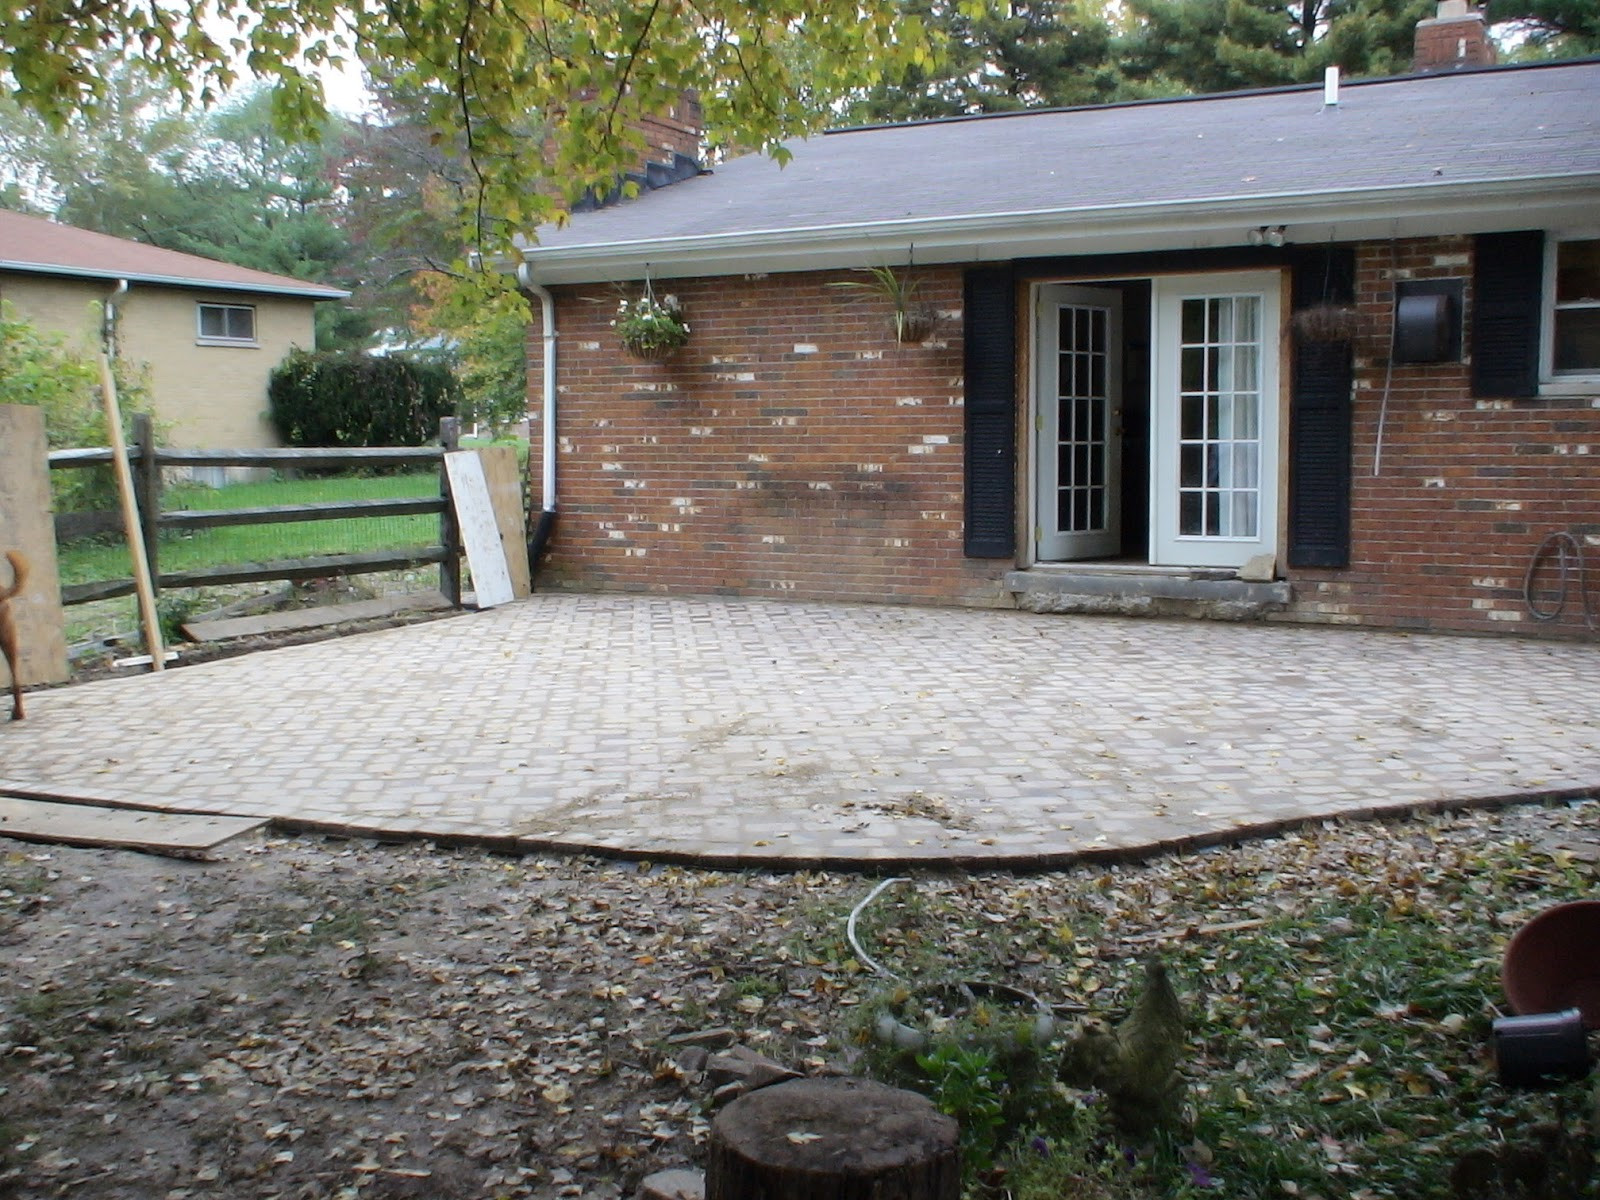 Best ideas about DIY Pavers Patio . Save or Pin Chez V Tales from the Projects DIY Paver Patio & Pond Now.